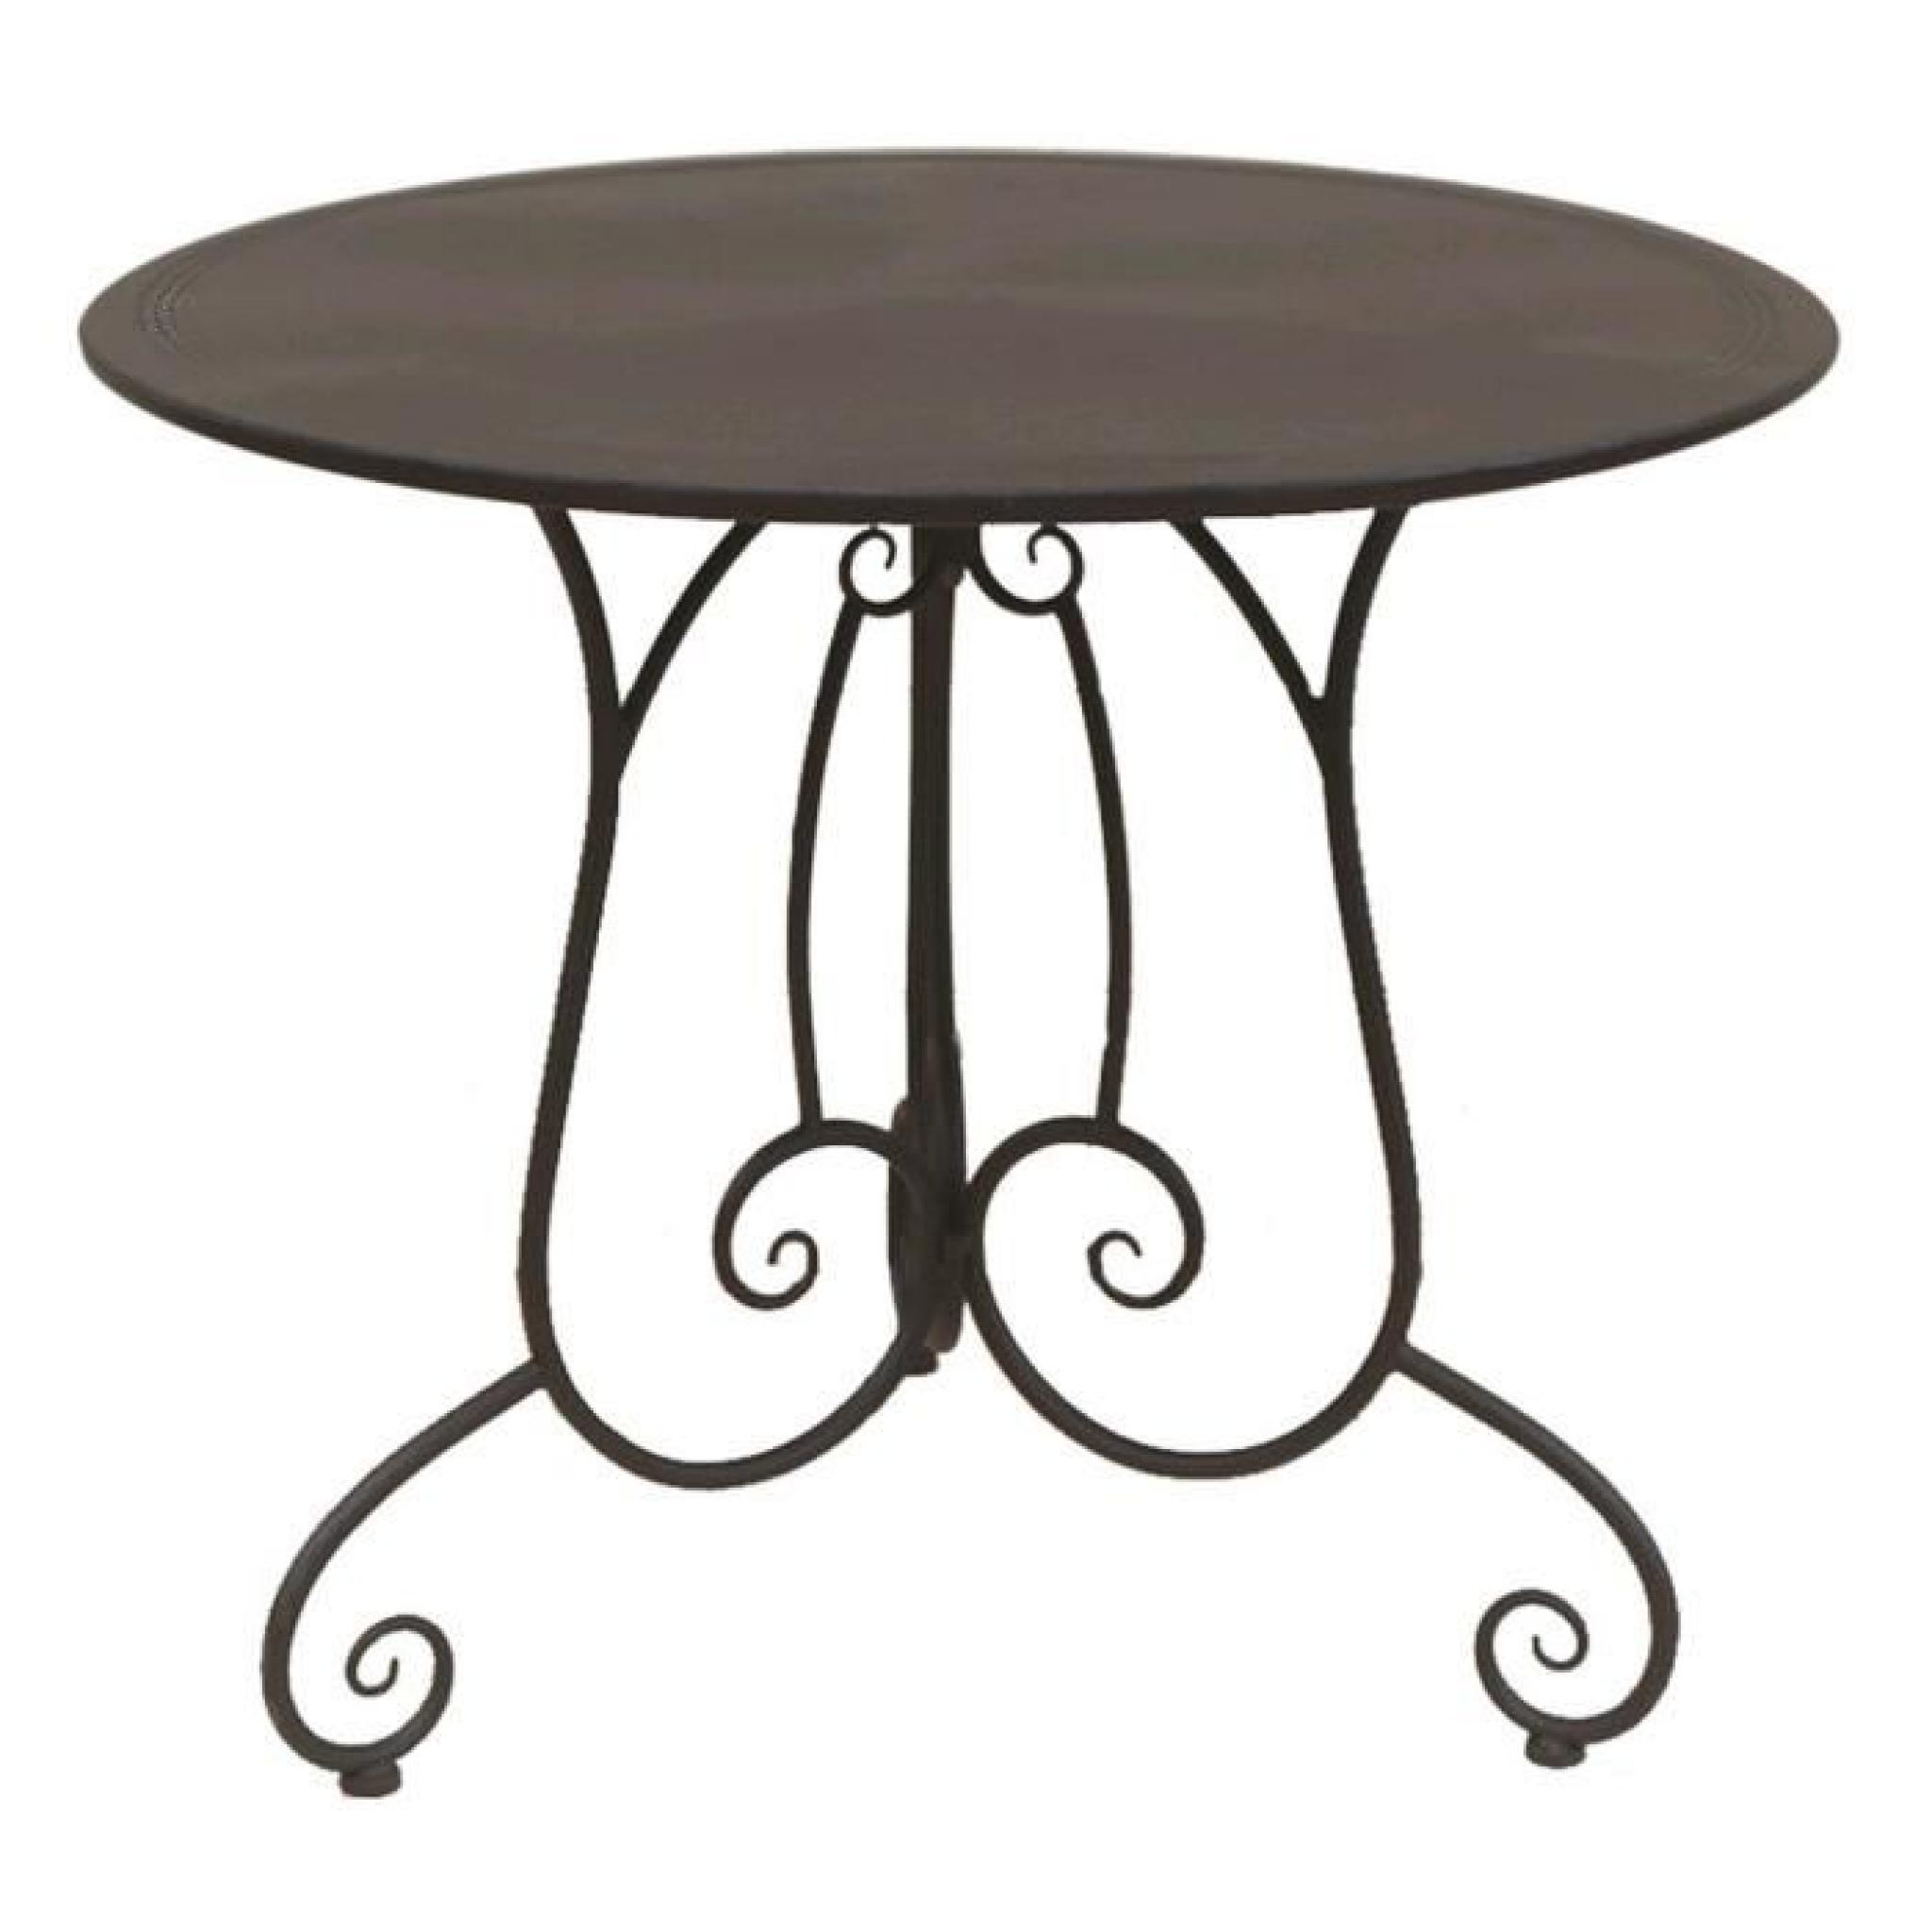 TABLE DE JARDIN FER FORGE CHARME